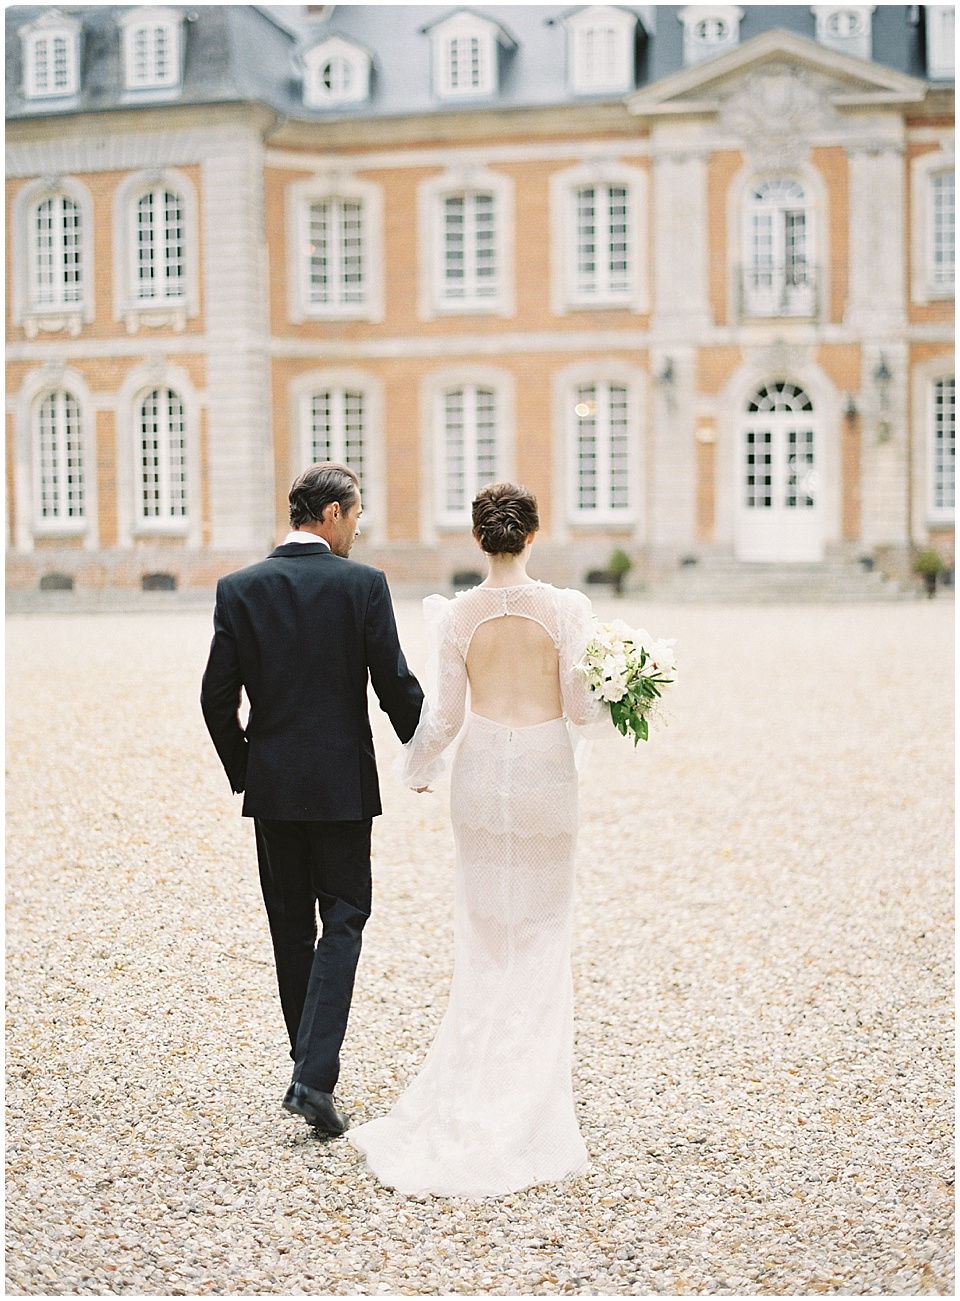 Ceremony setup | French chateau | Bride and groom portraits | Joy Proctor Design | Bows and Arrows florals | French Wedding Inspiration | France Wedding | Destination Film Photographer | Paris Wedding | Fine Art Film Photographer |  Chateau De Carsix | Whiskers and Willow Photography.jpg